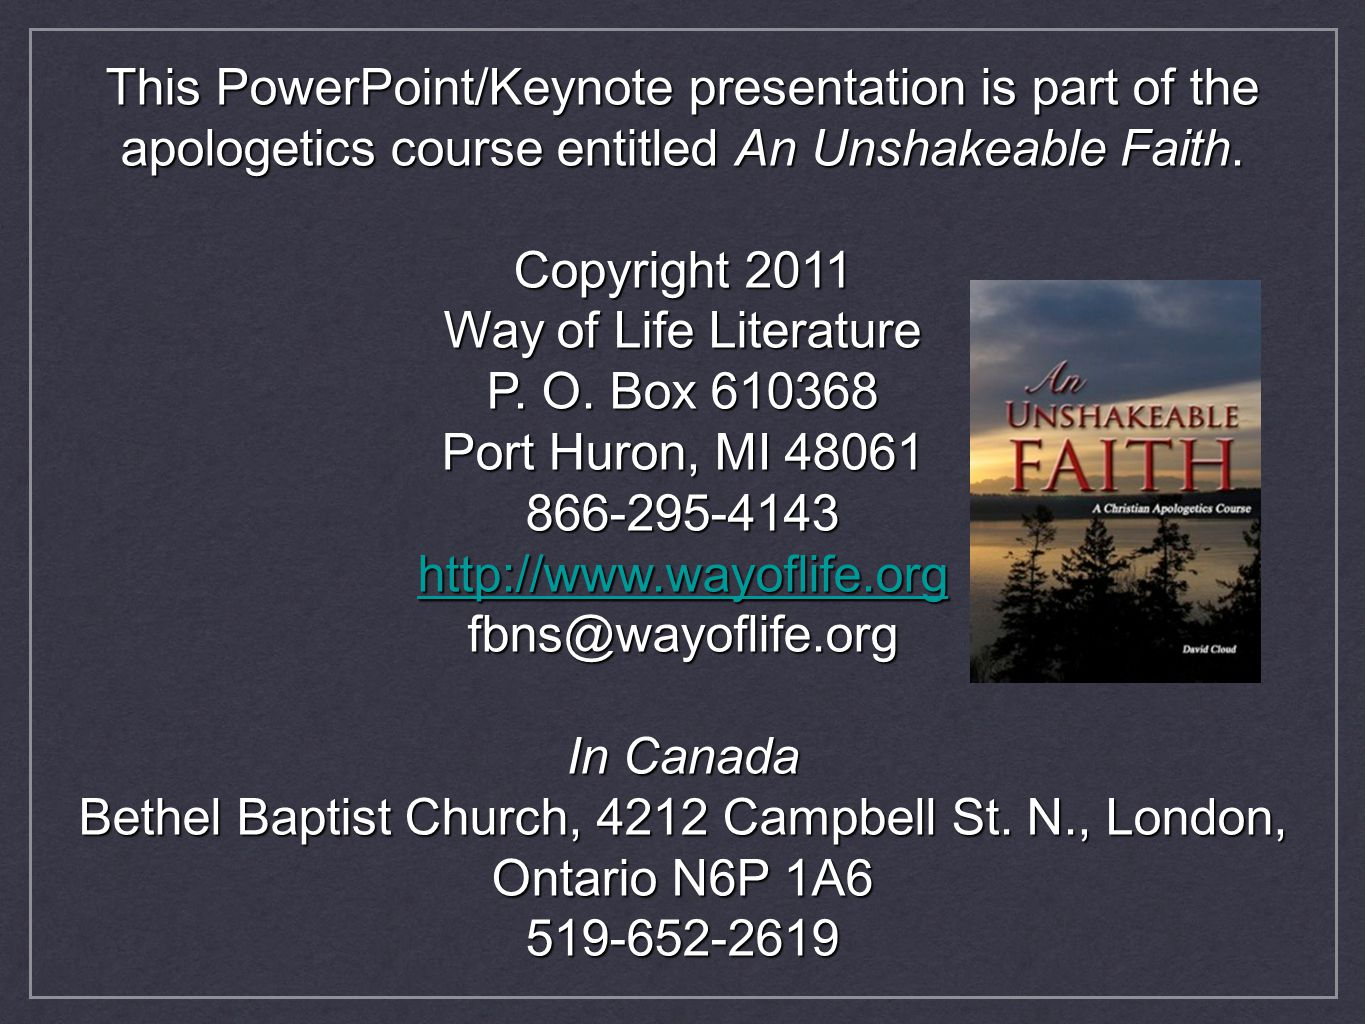 This PowerPoint/Keynote presentation is part of the apologetics course entitled An Unshakeable Faith. Copyright 2011 Way of Life Literature P. O. Box